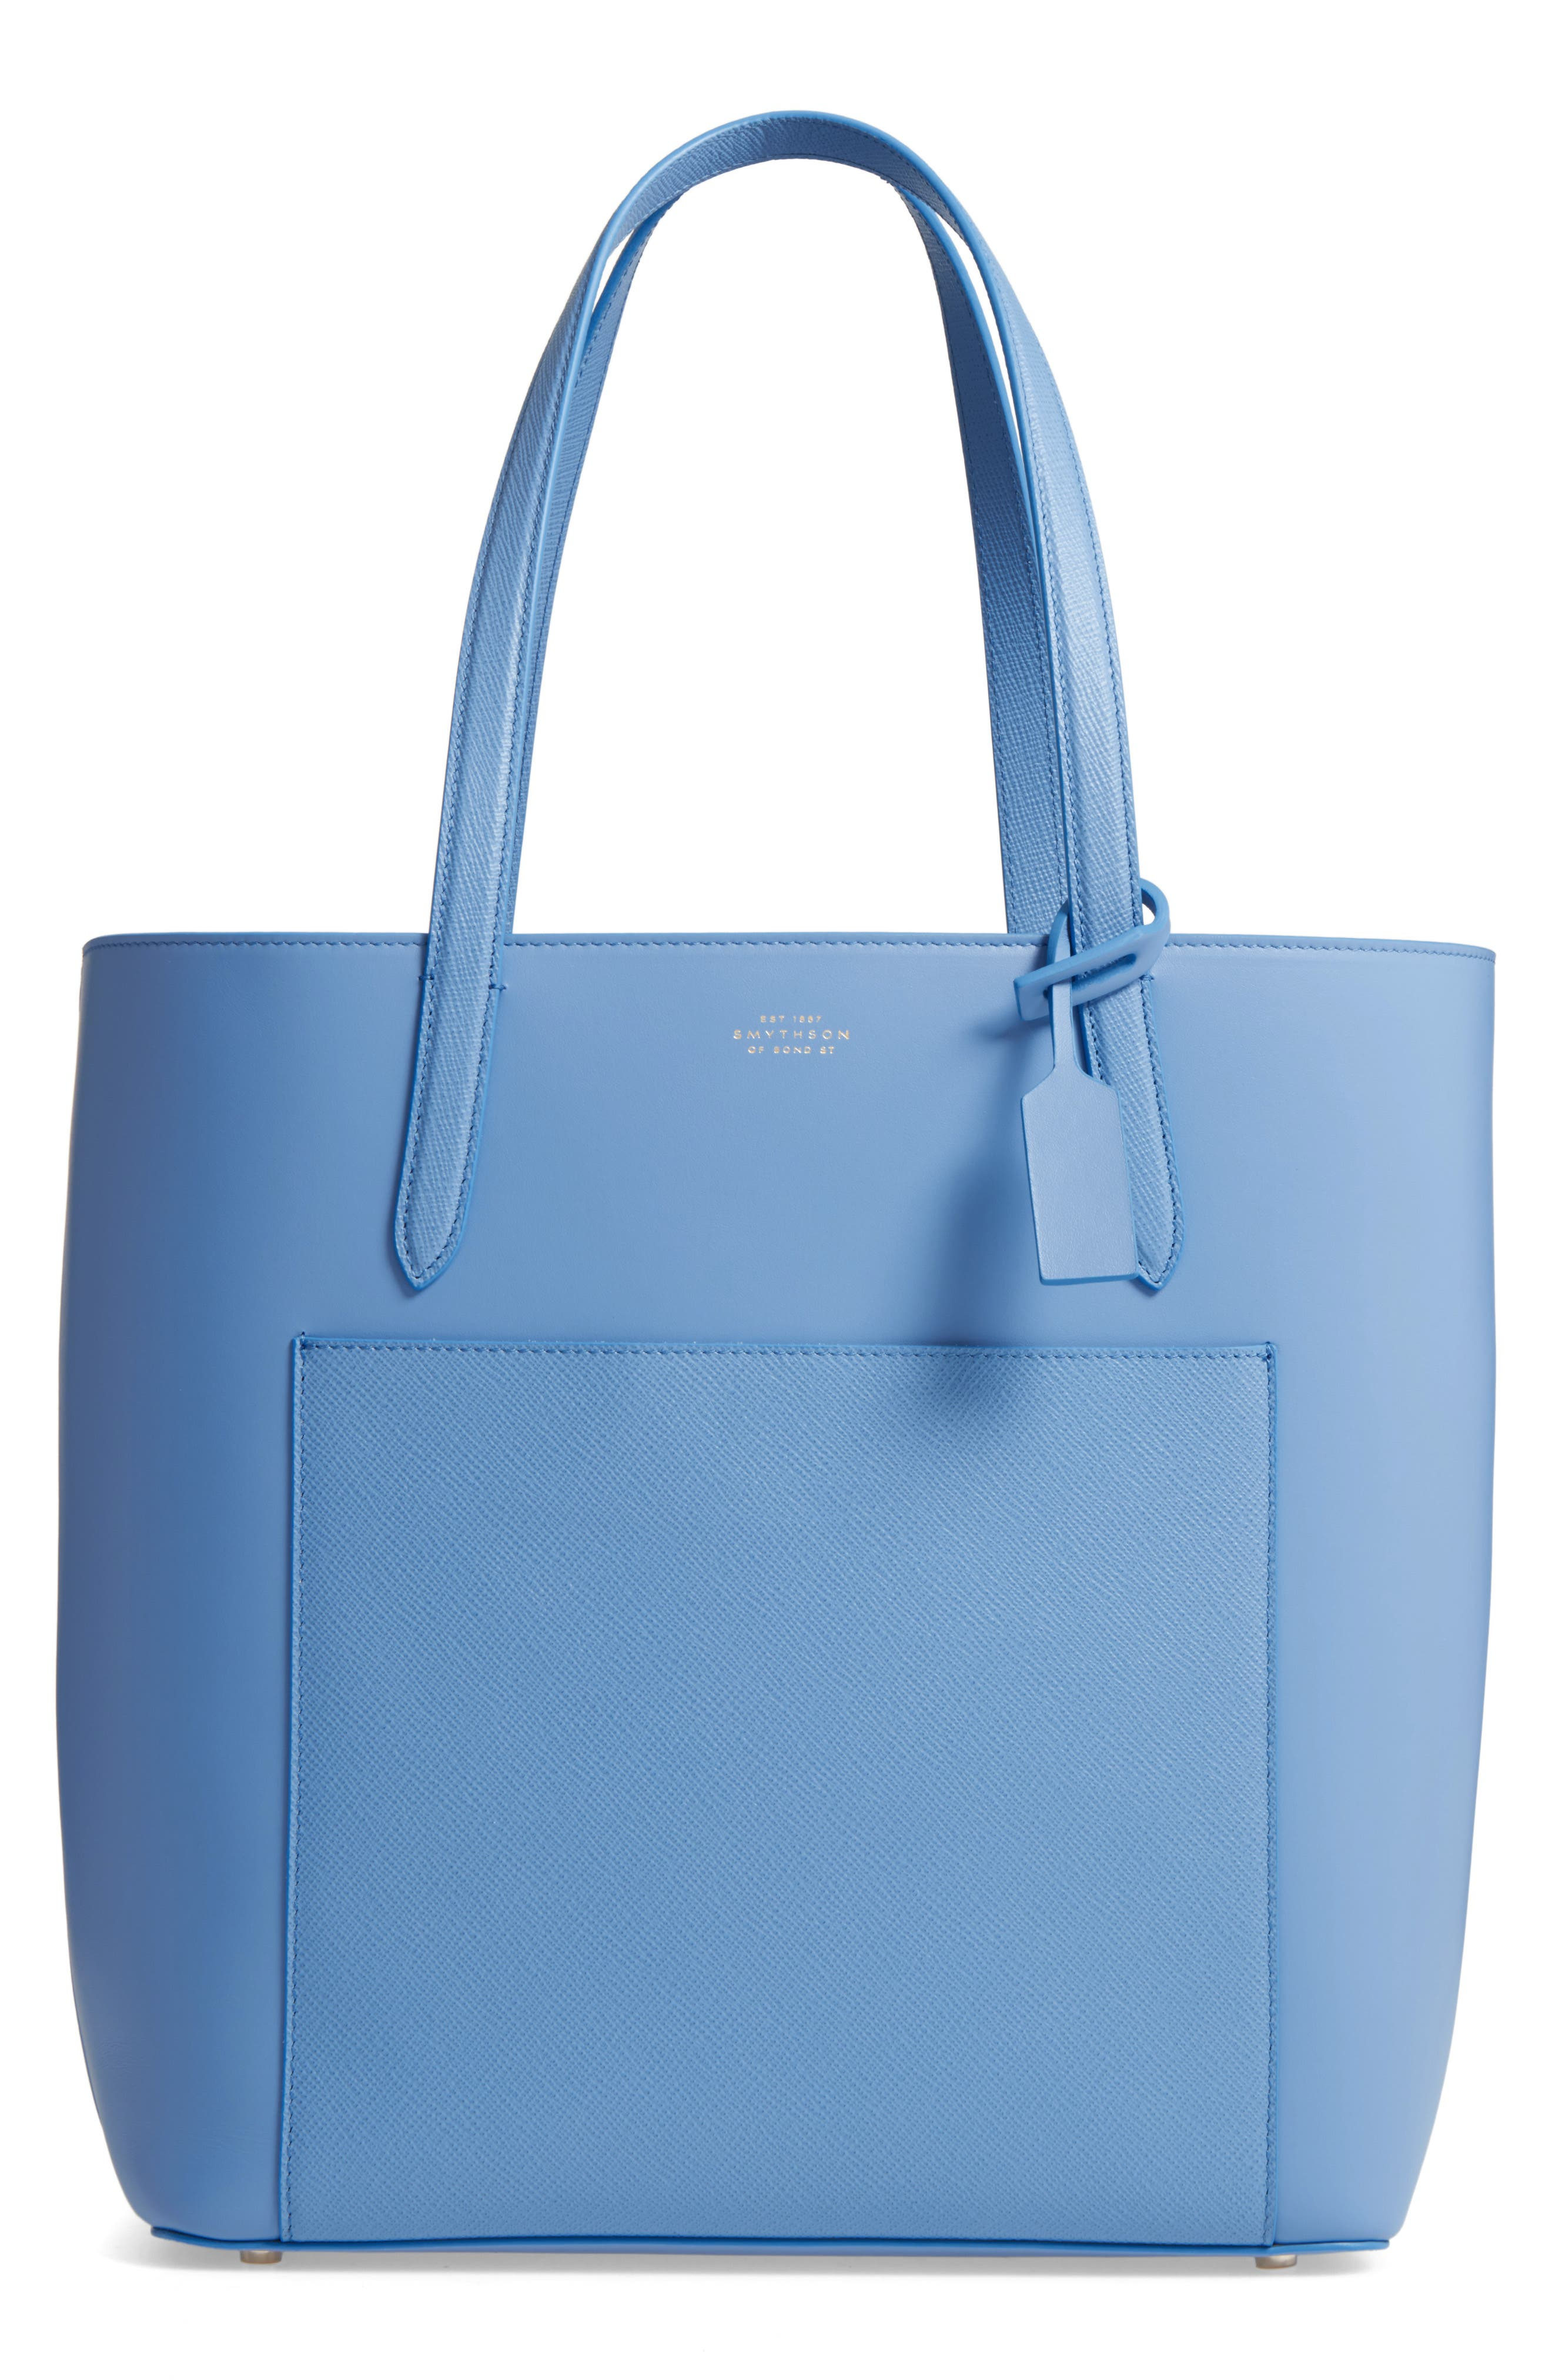 SMYTHSON Panama Leather Tote